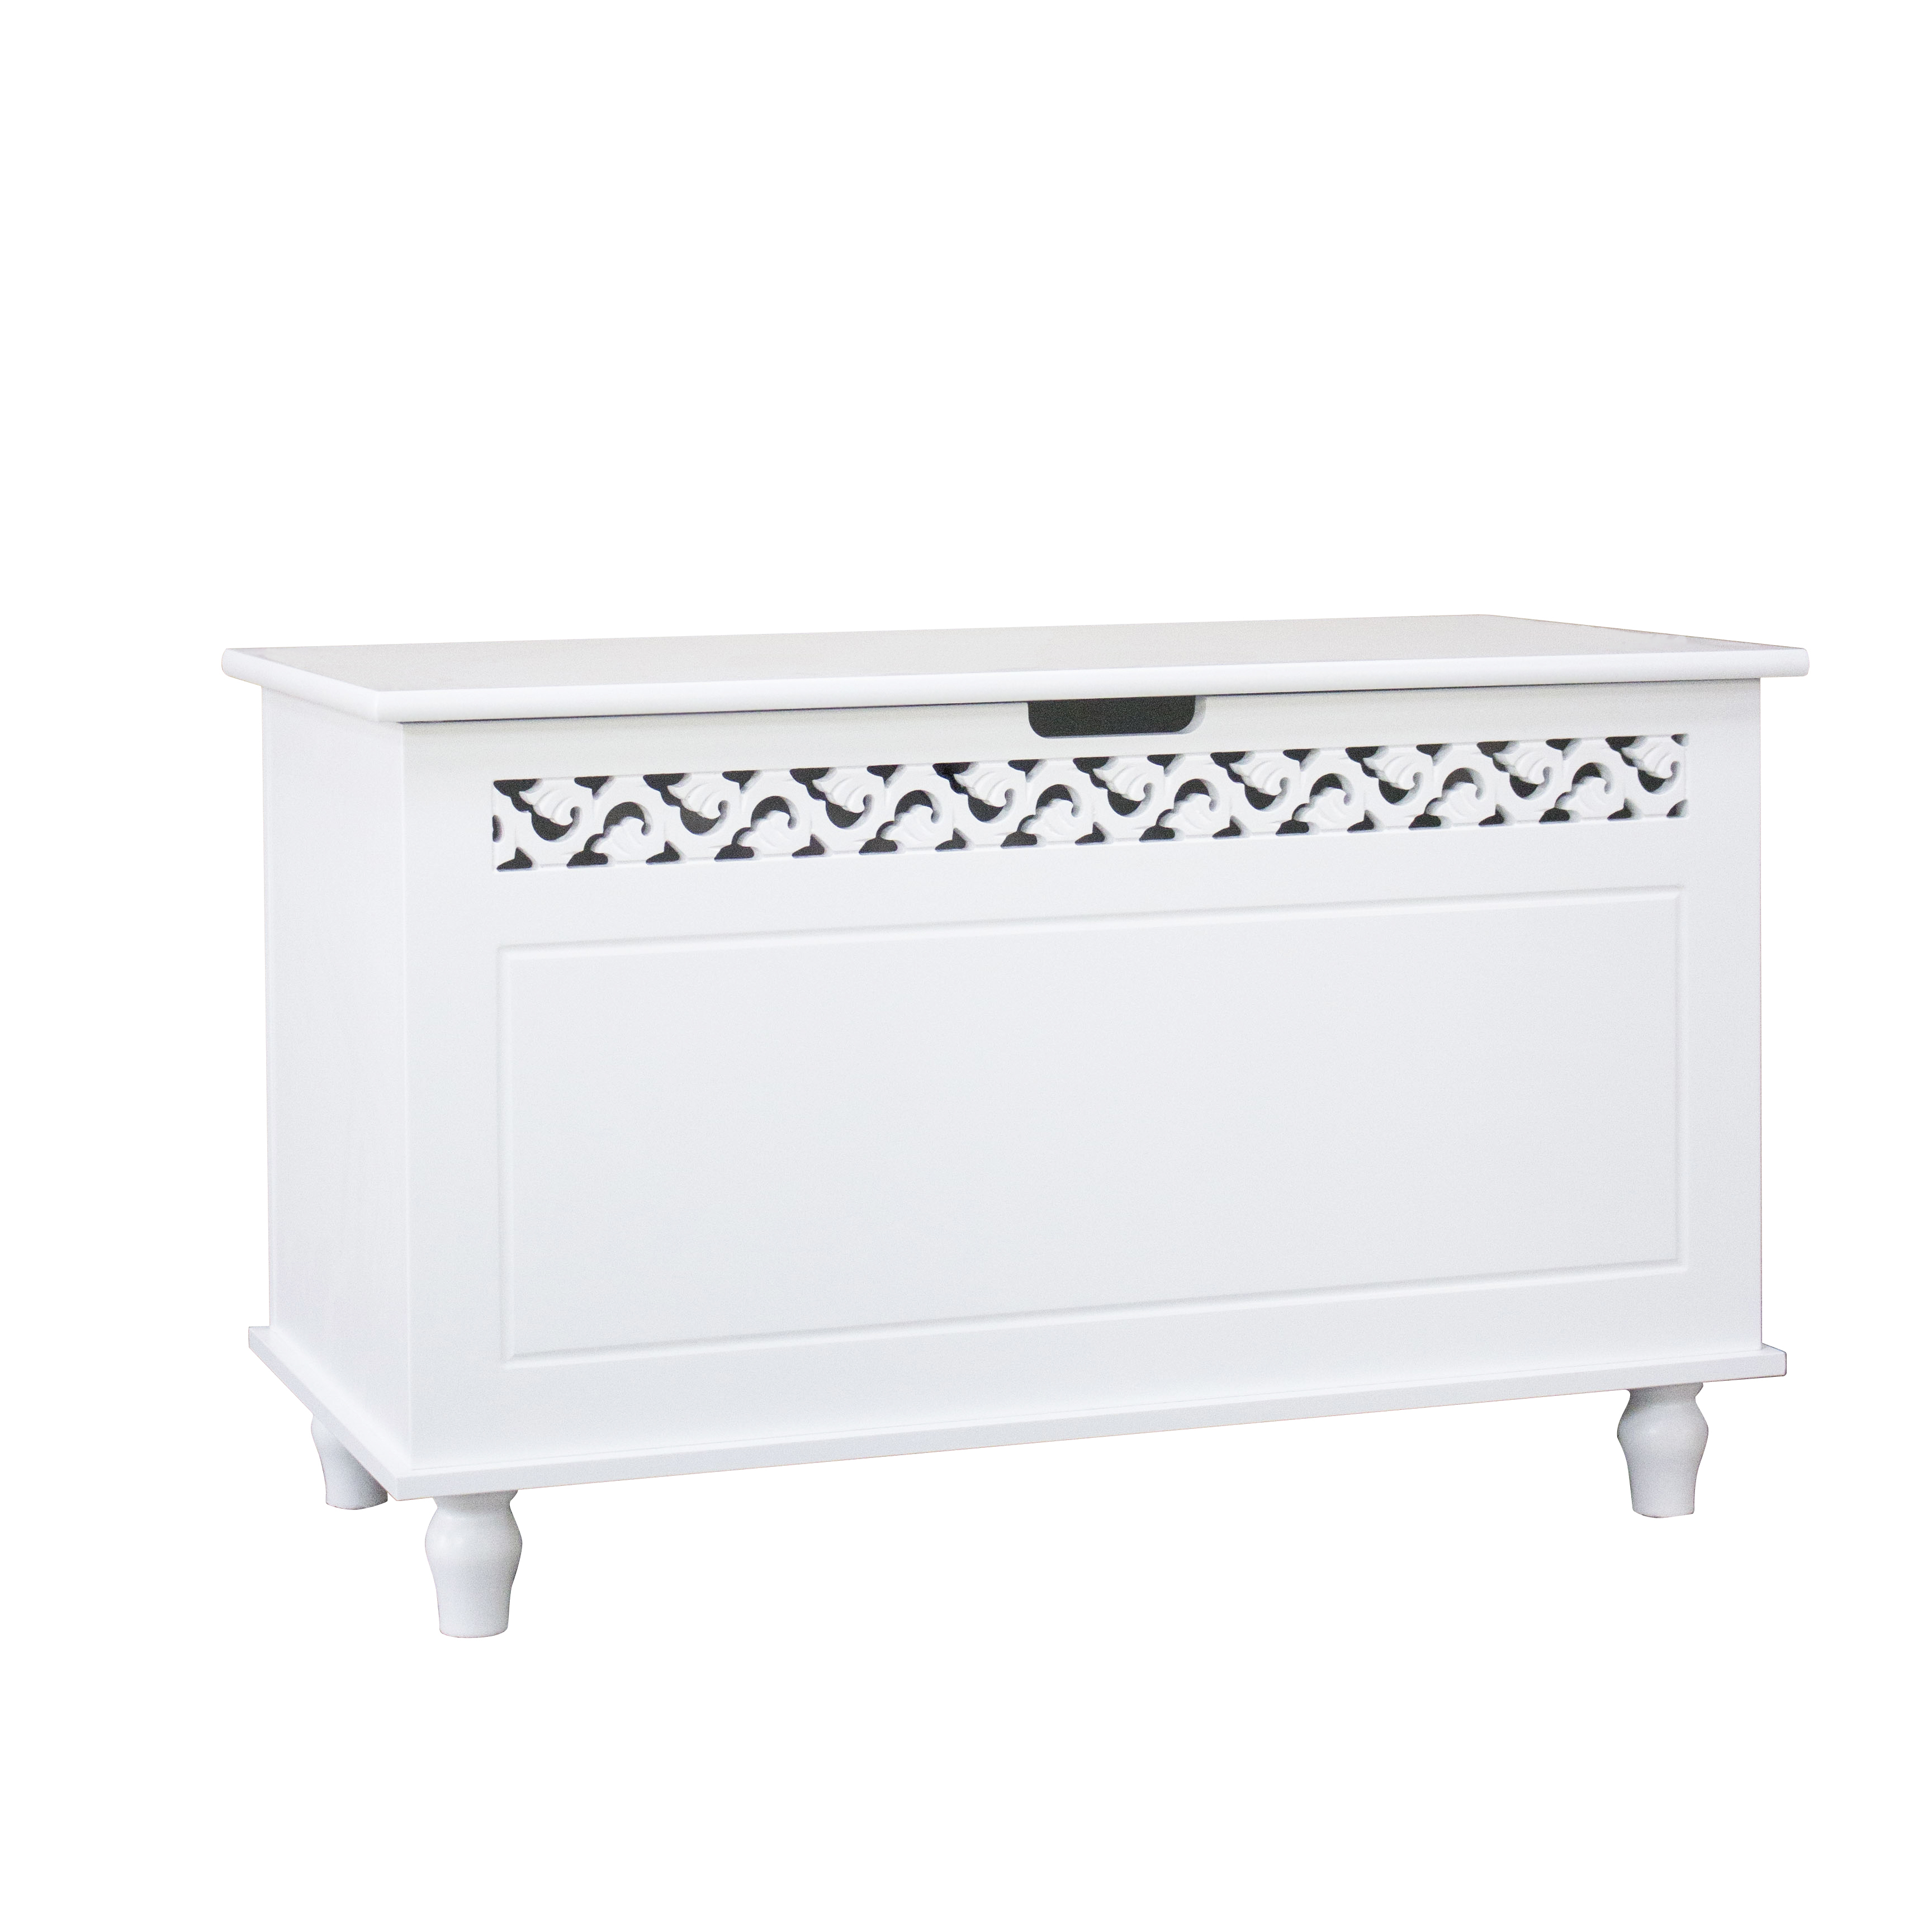 Details About Woodluv Fretwork Mdf Wooden Ottoman Storage Toy Chest Bathroombedding White inside sizing 3456 X 3456